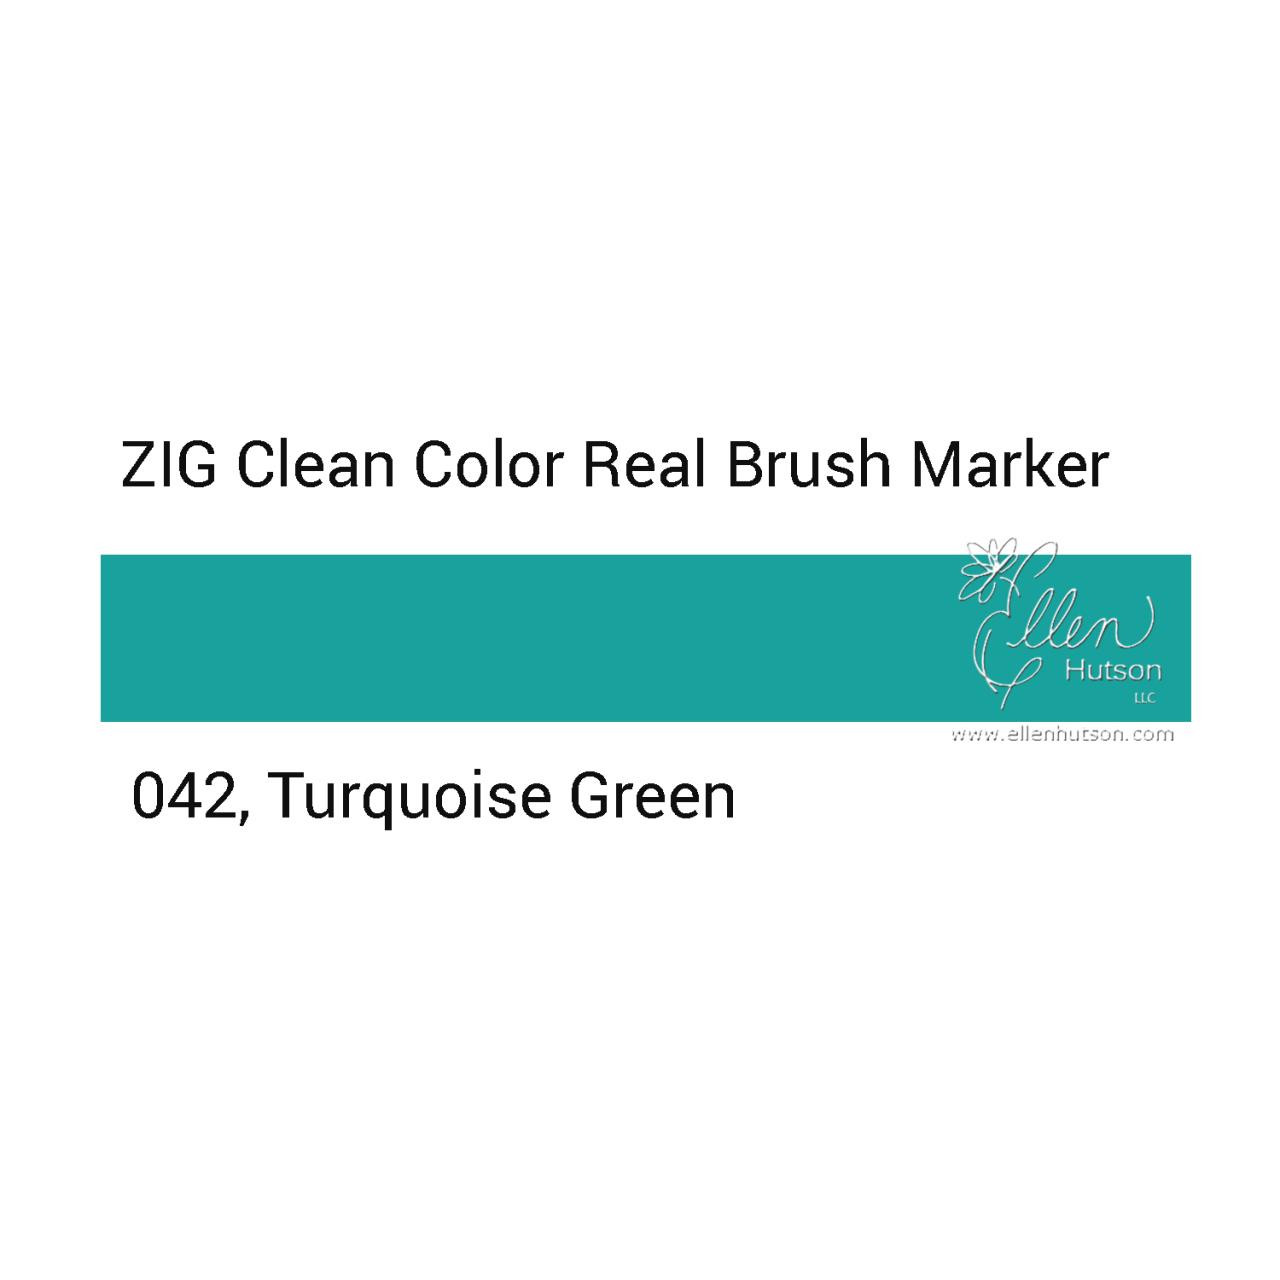 042 - Turquoise Green, ZIG Clean Color Real Brush Marker -